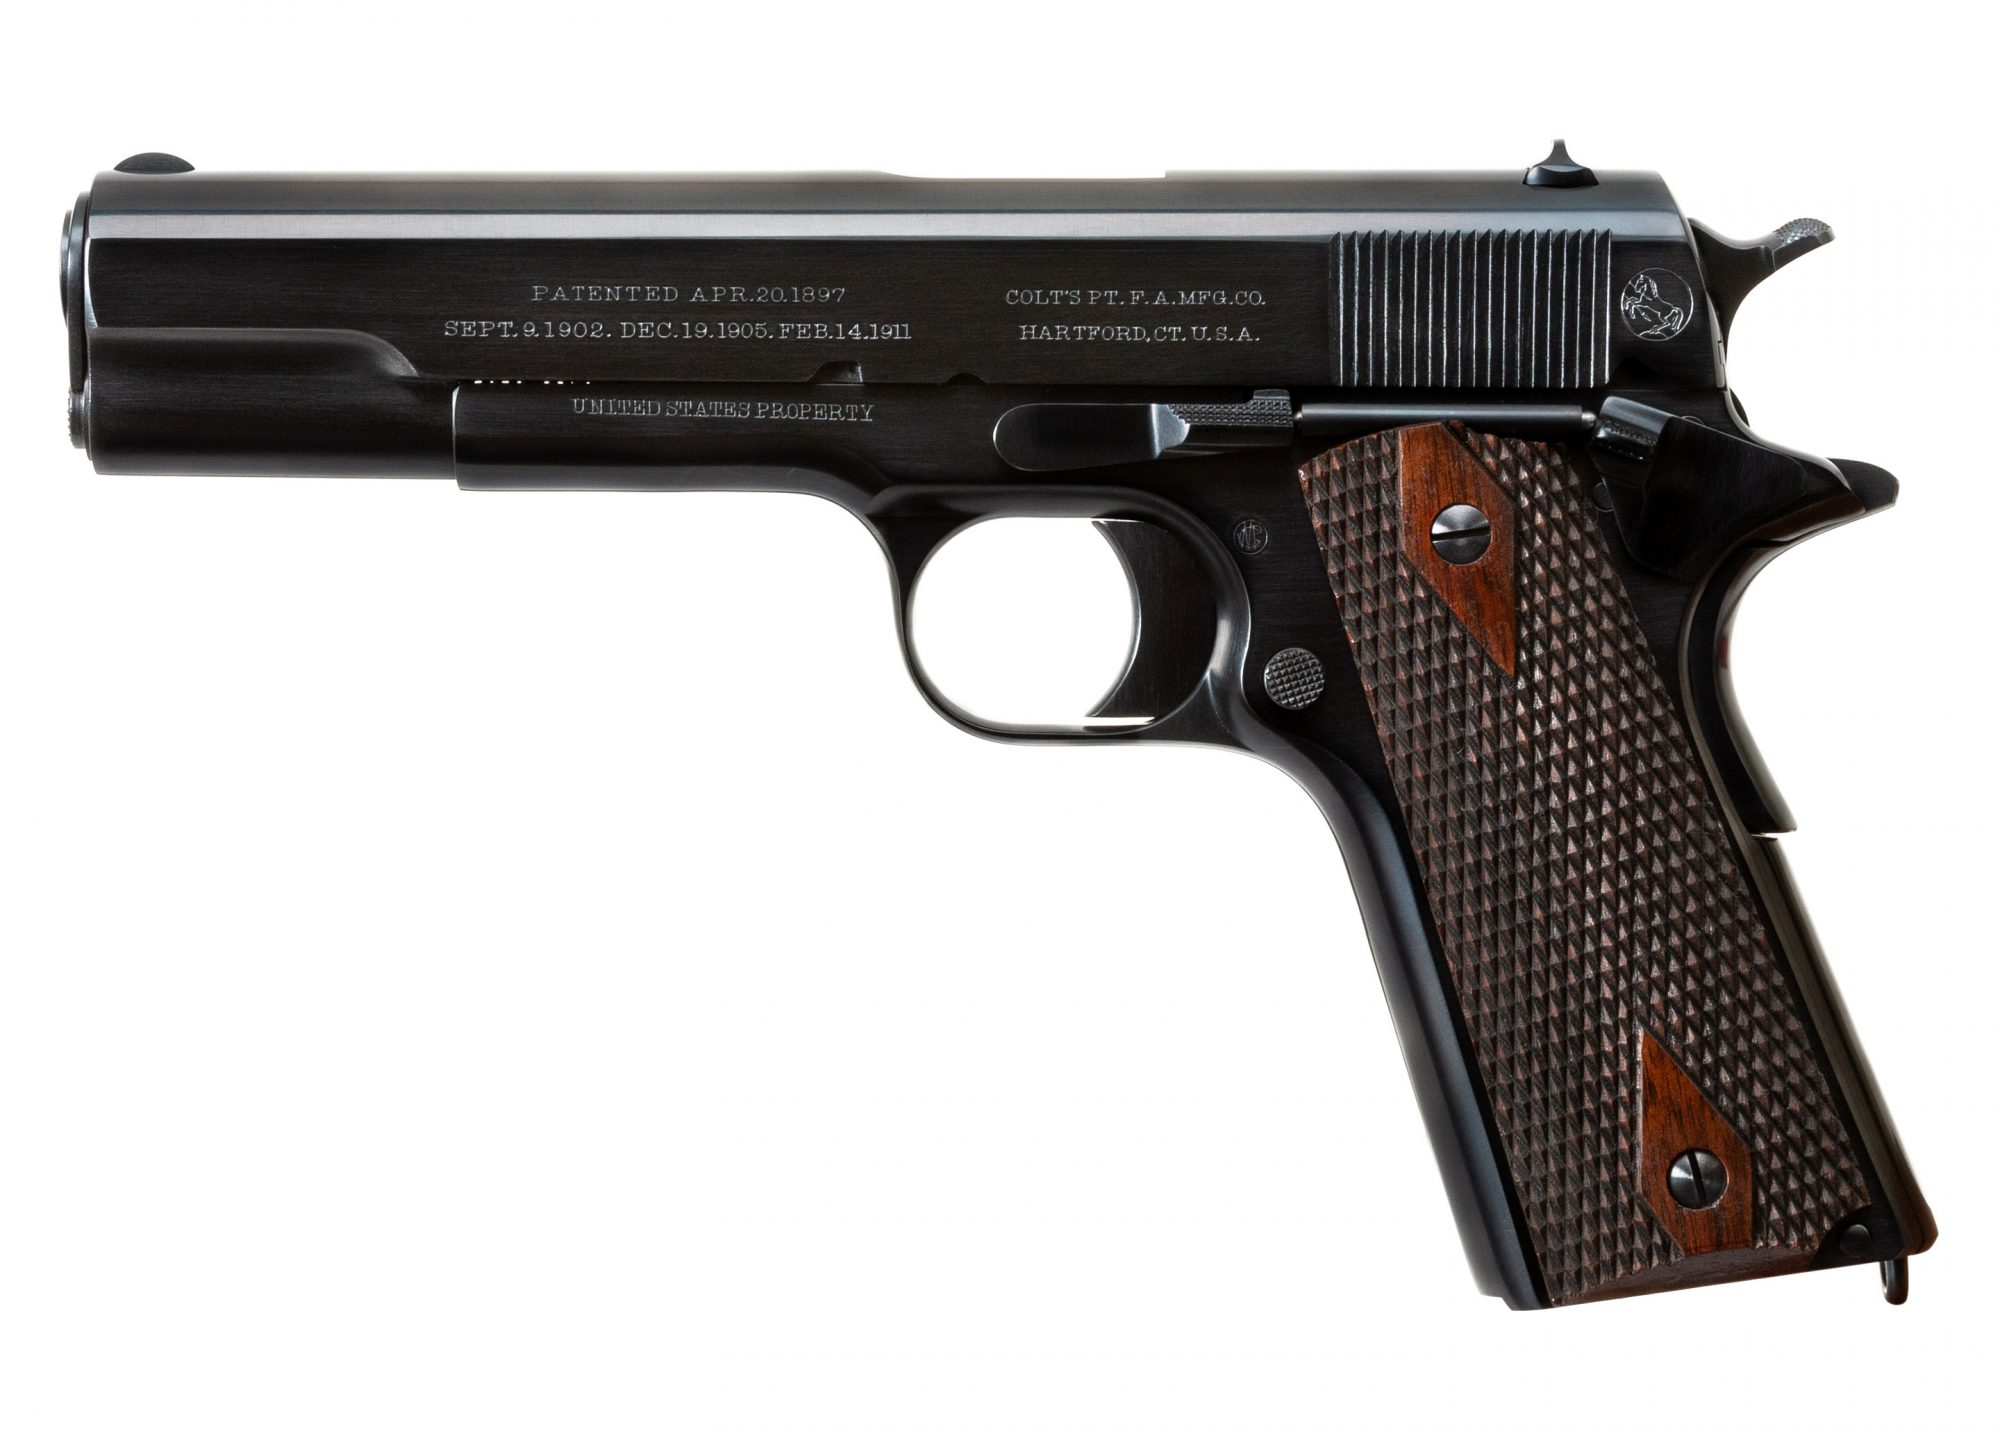 Photo of a restored Colt Model 1911 from 1912, restored by Turnbull Restoration of Bloomfield, NY